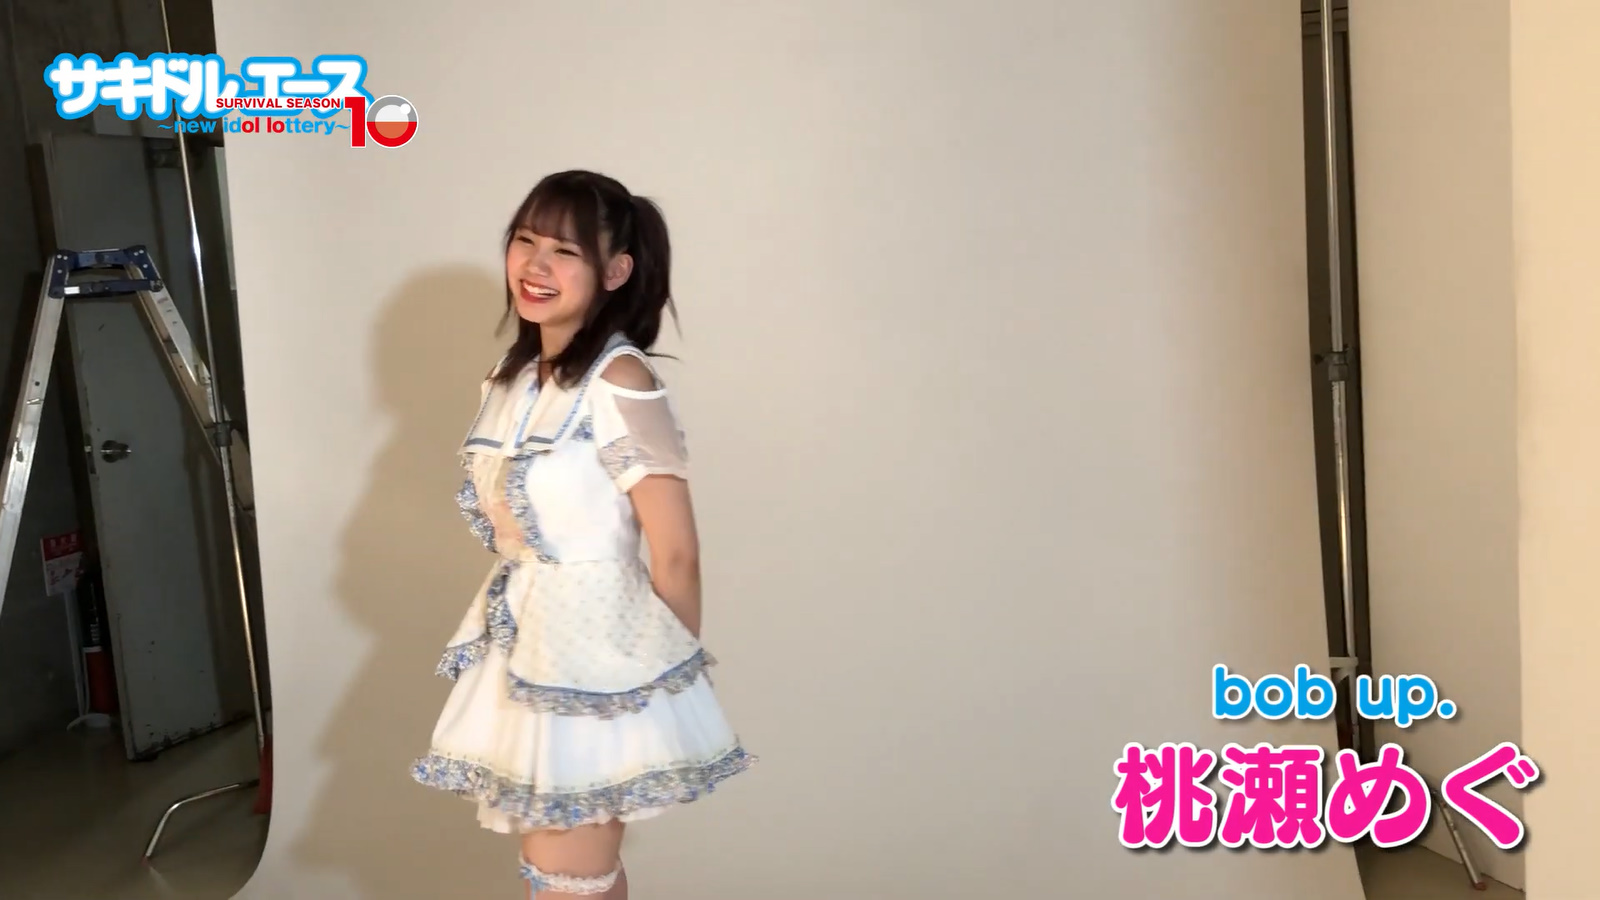 Sakidol Ace 10 Introduction Movie Capture of Swimsuit179